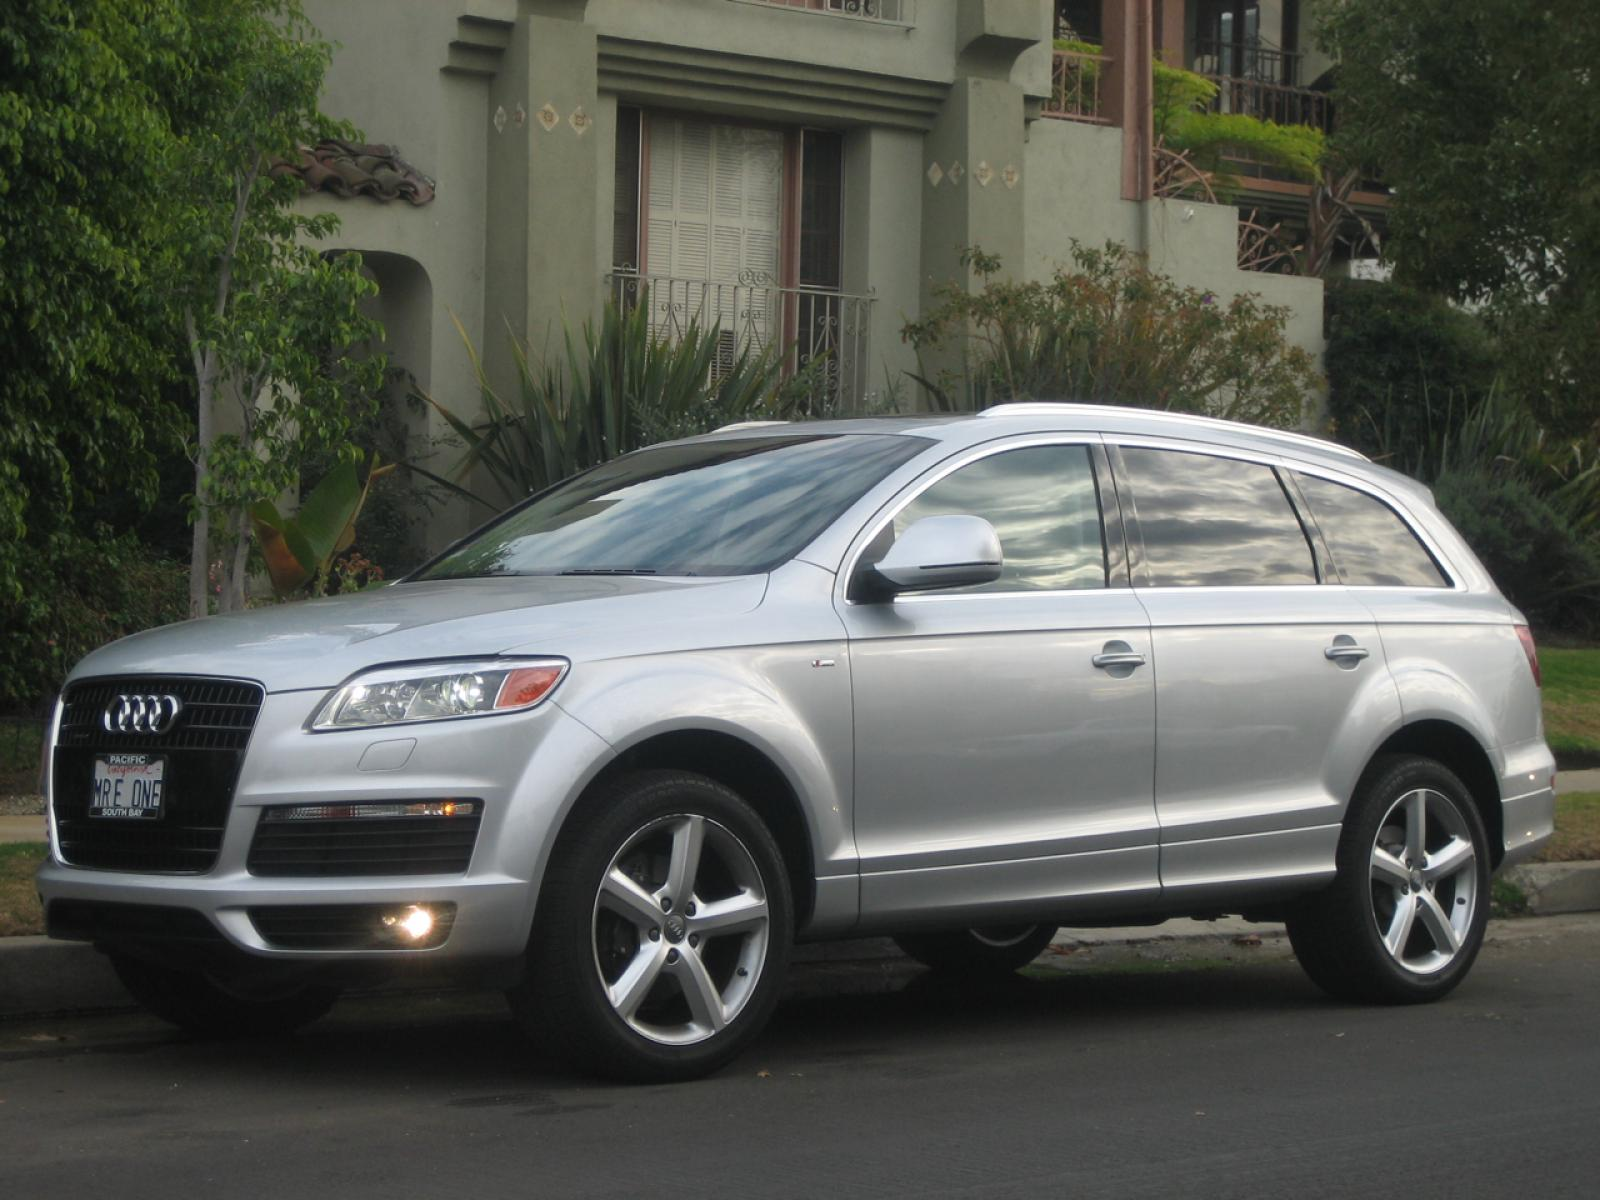 2007 audi q7 information and photos zombiedrive. Black Bedroom Furniture Sets. Home Design Ideas